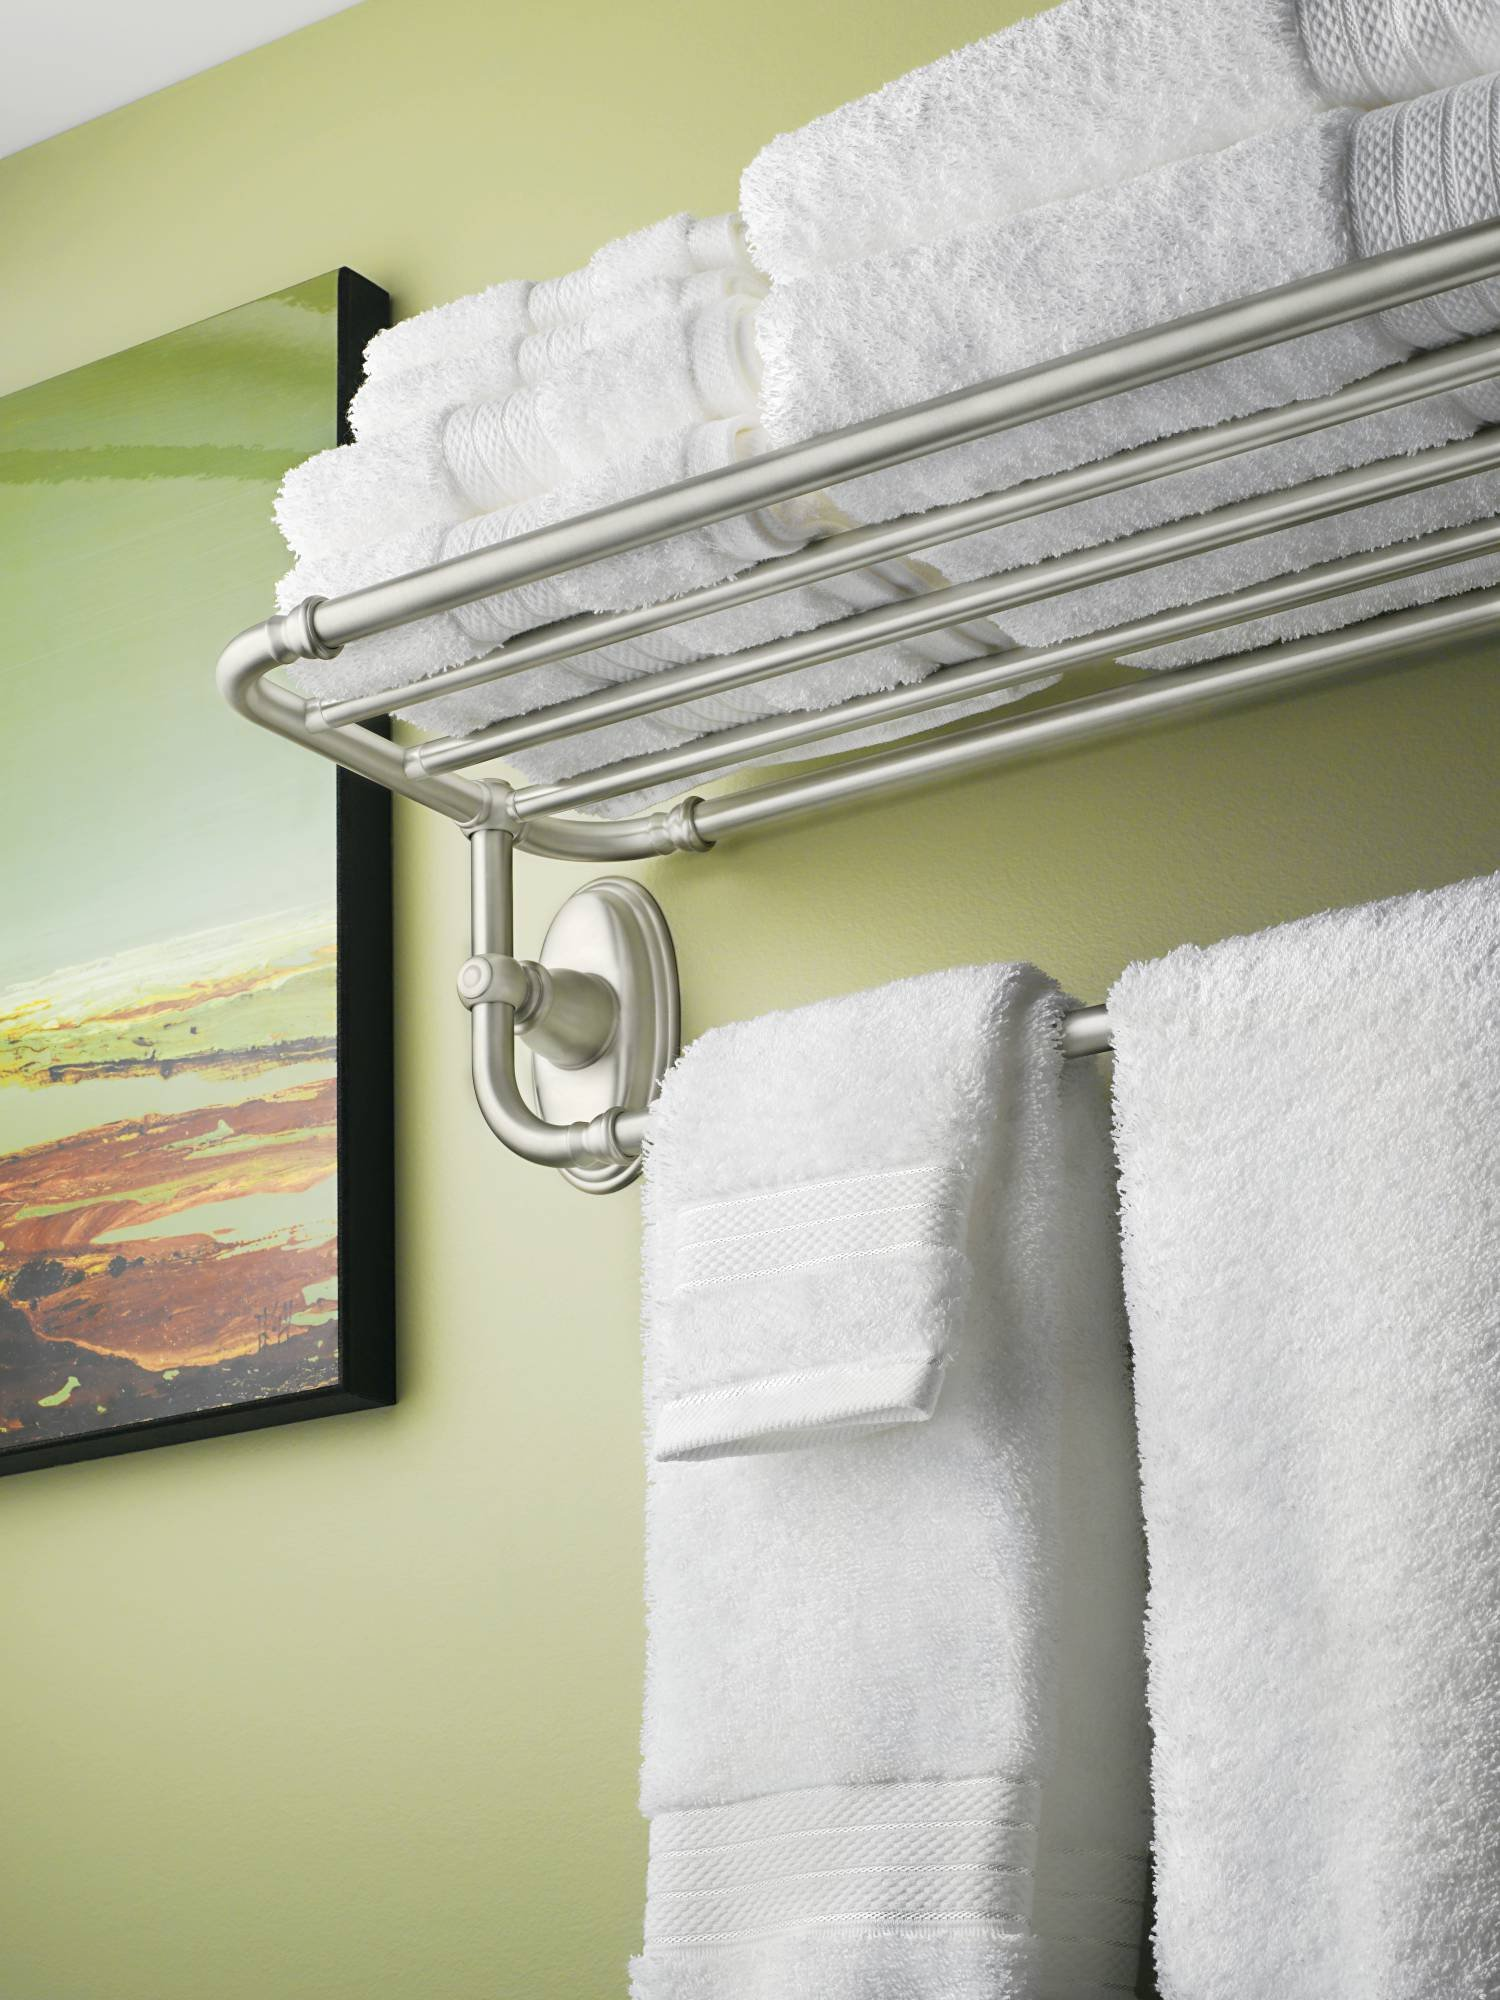 Moen YB5494BN Kingsley Bathroom Towel Shelf, Brushed Nickel by Moen (Image #2)